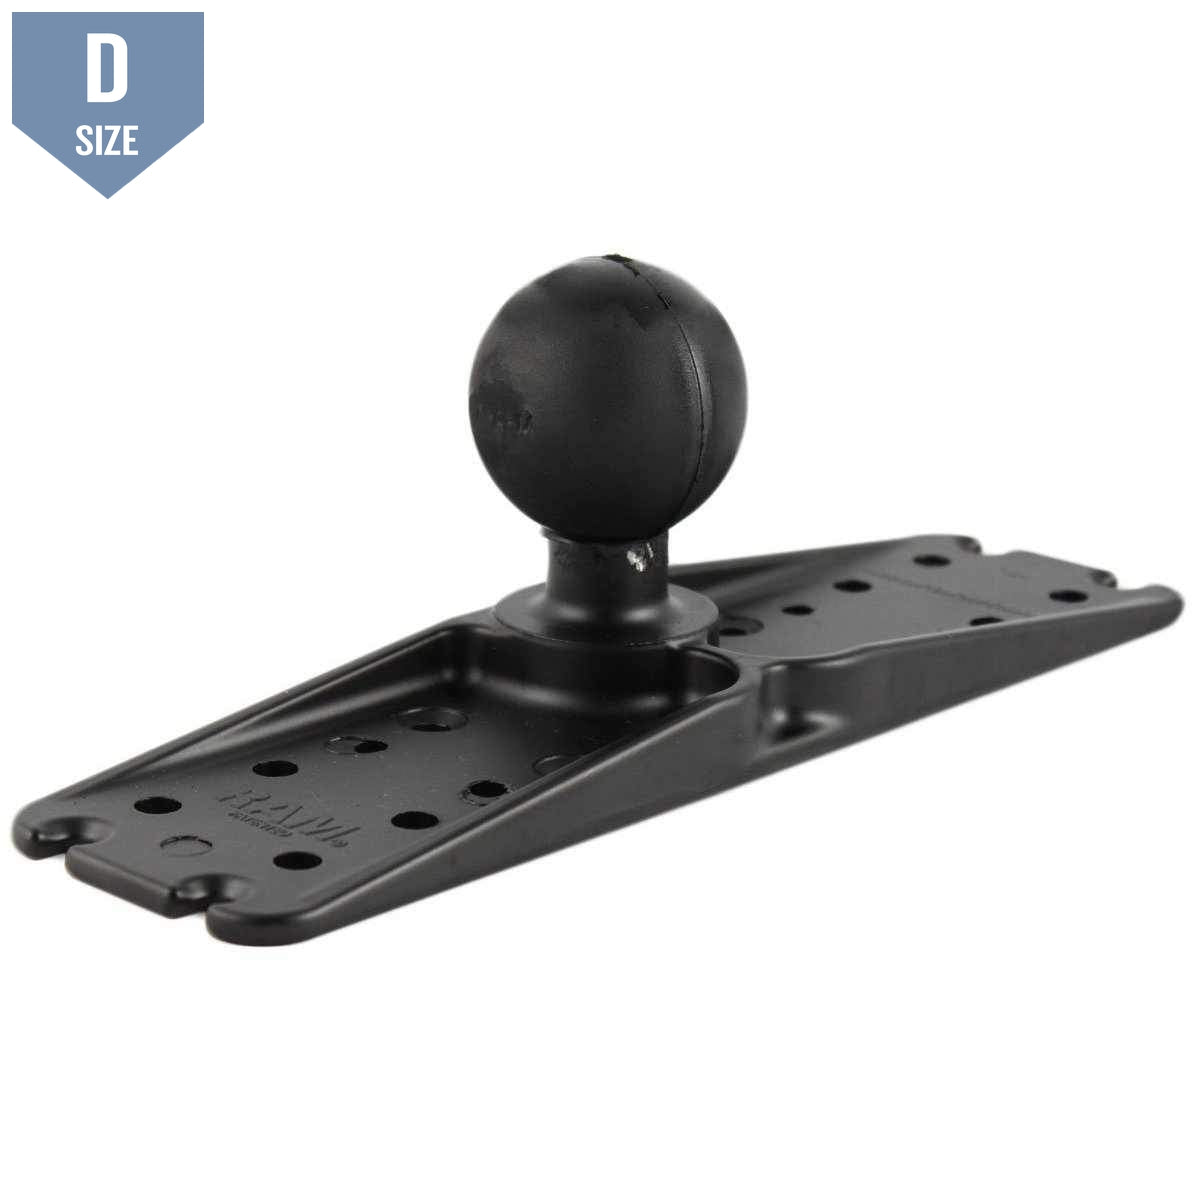 "RAM 11"" x 3"" Universal Electronics Base with 2.25"" Ball (RAM-D-111BU) - Modest Mounts"